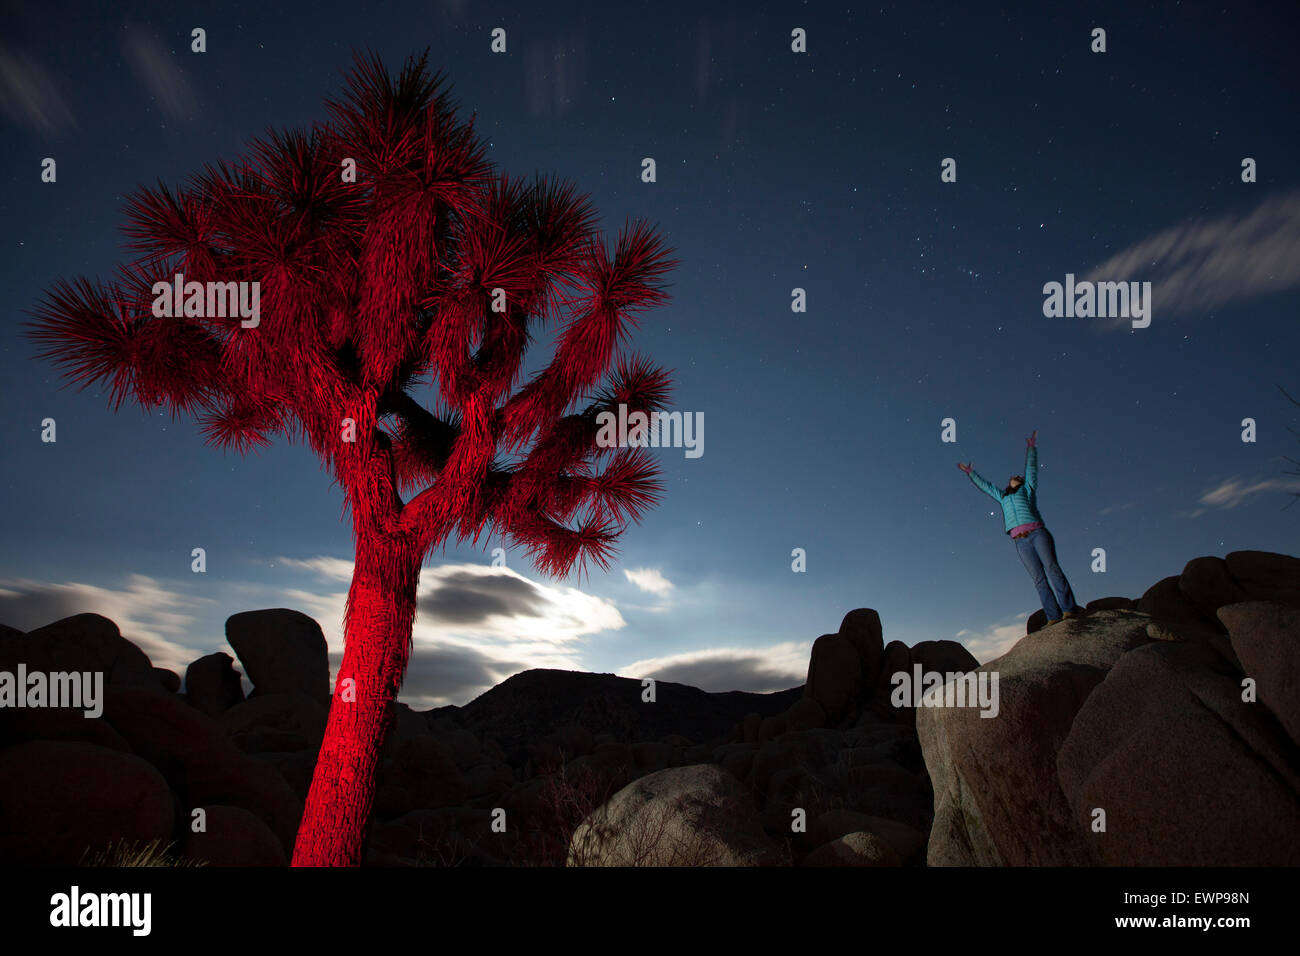 A woman reaching to the sky near a glowing red tree in the desert at night. - Stock Image